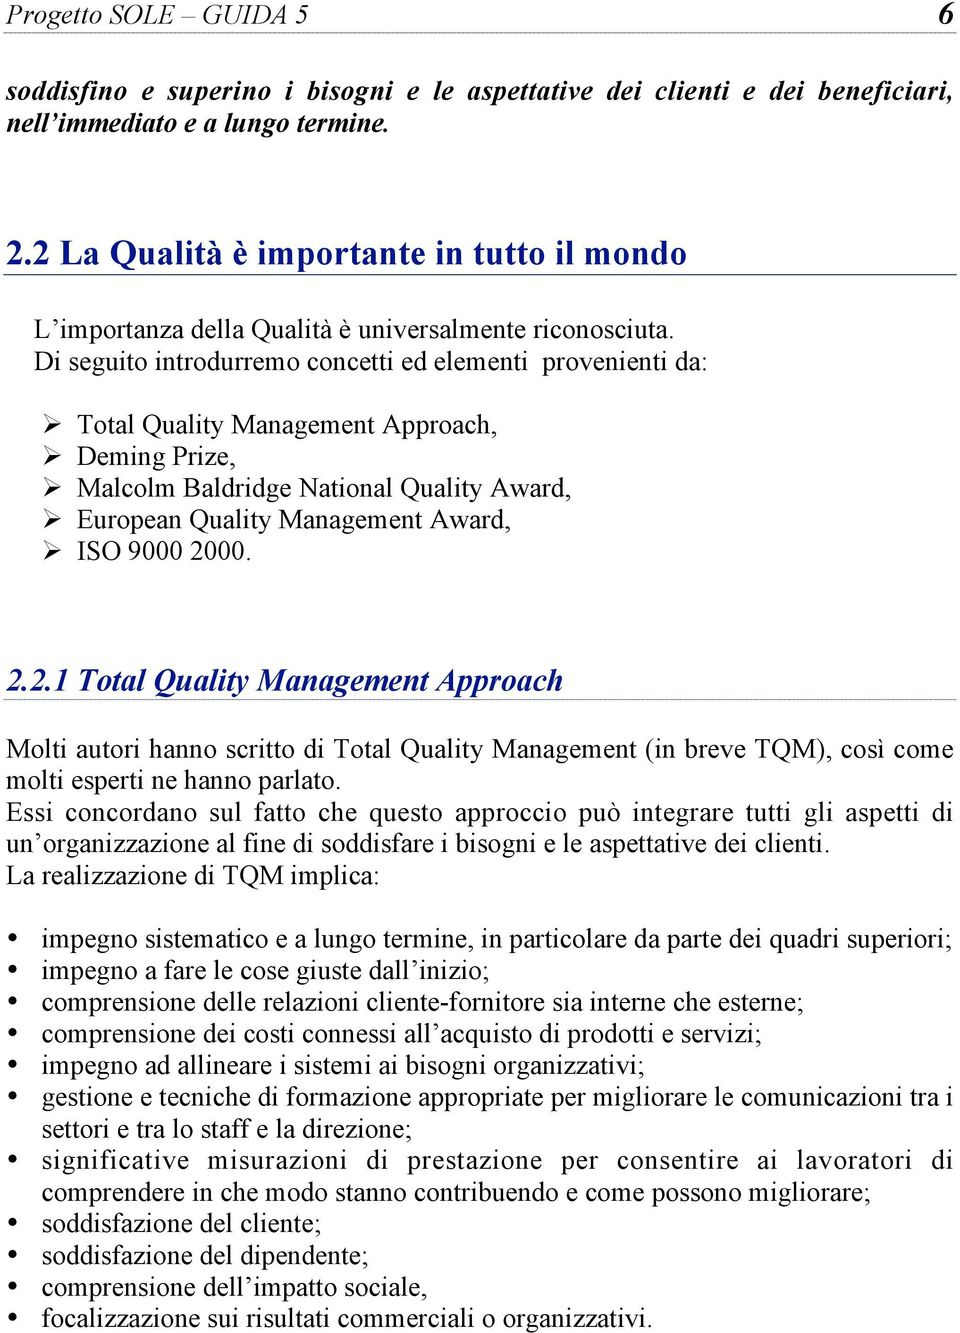 Di seguito introdurremo concetti ed elementi provenienti da: Total Quality Management Approach, Deming Prize, Malcolm Baldridge National Quality Award, European Quality Management Award, ISO 9000